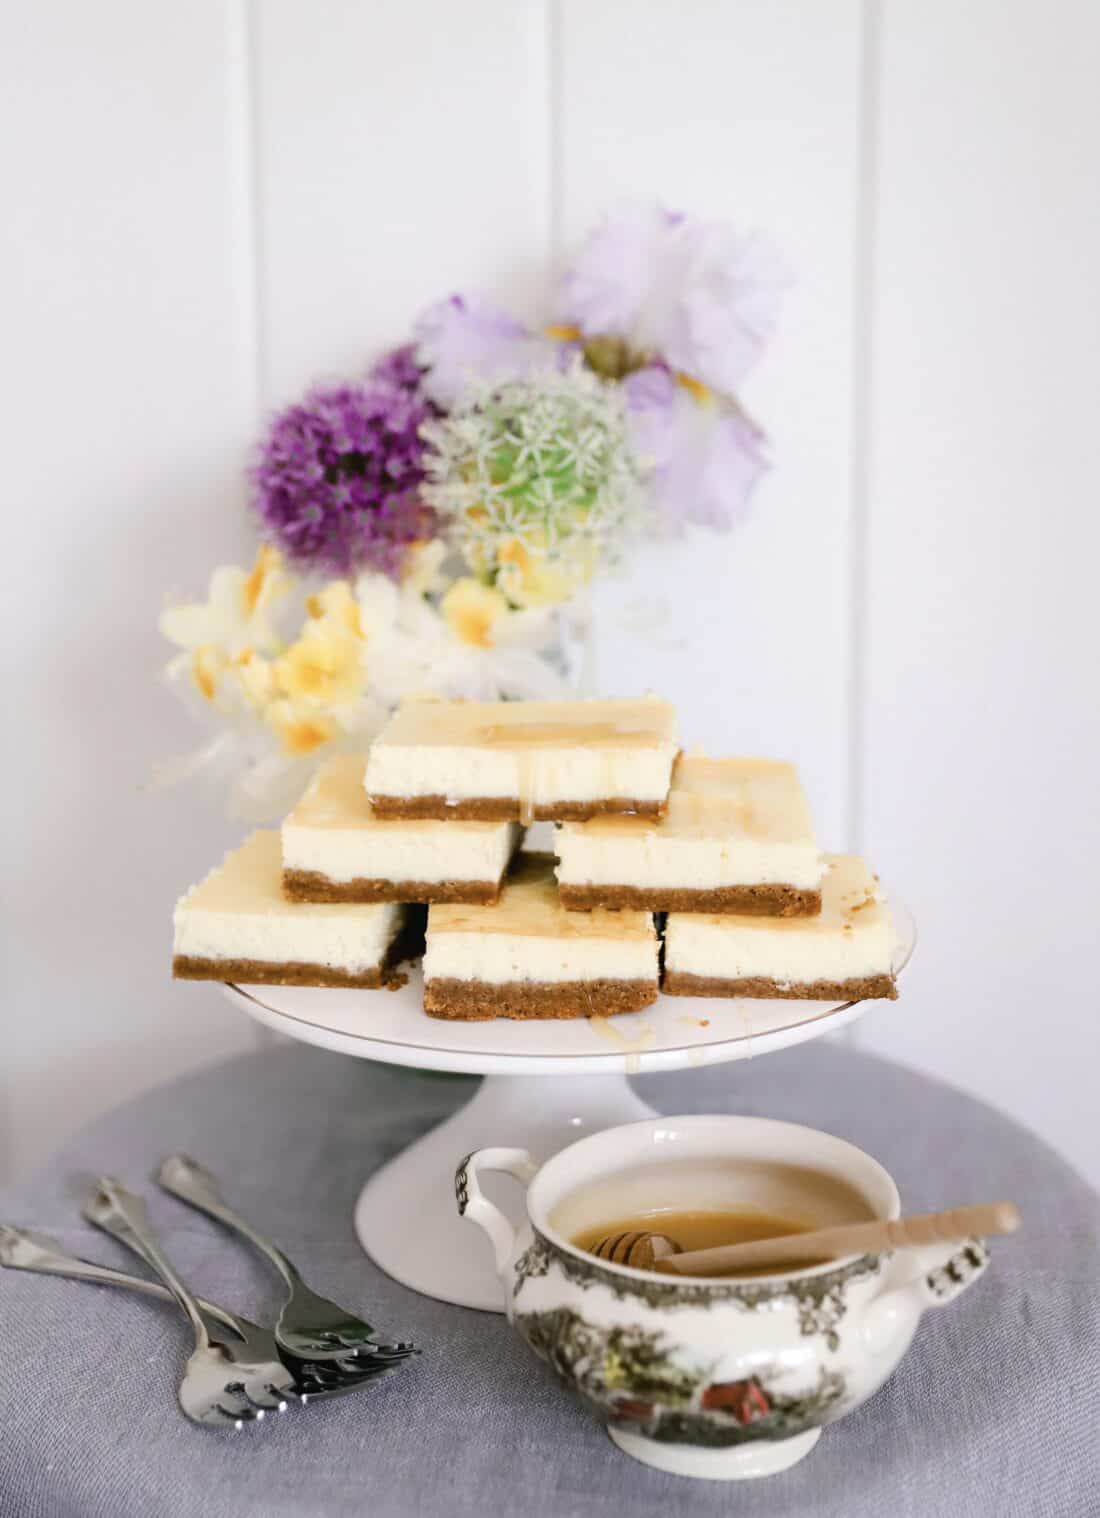 six pieces of cheesecake with spring flowers in the background